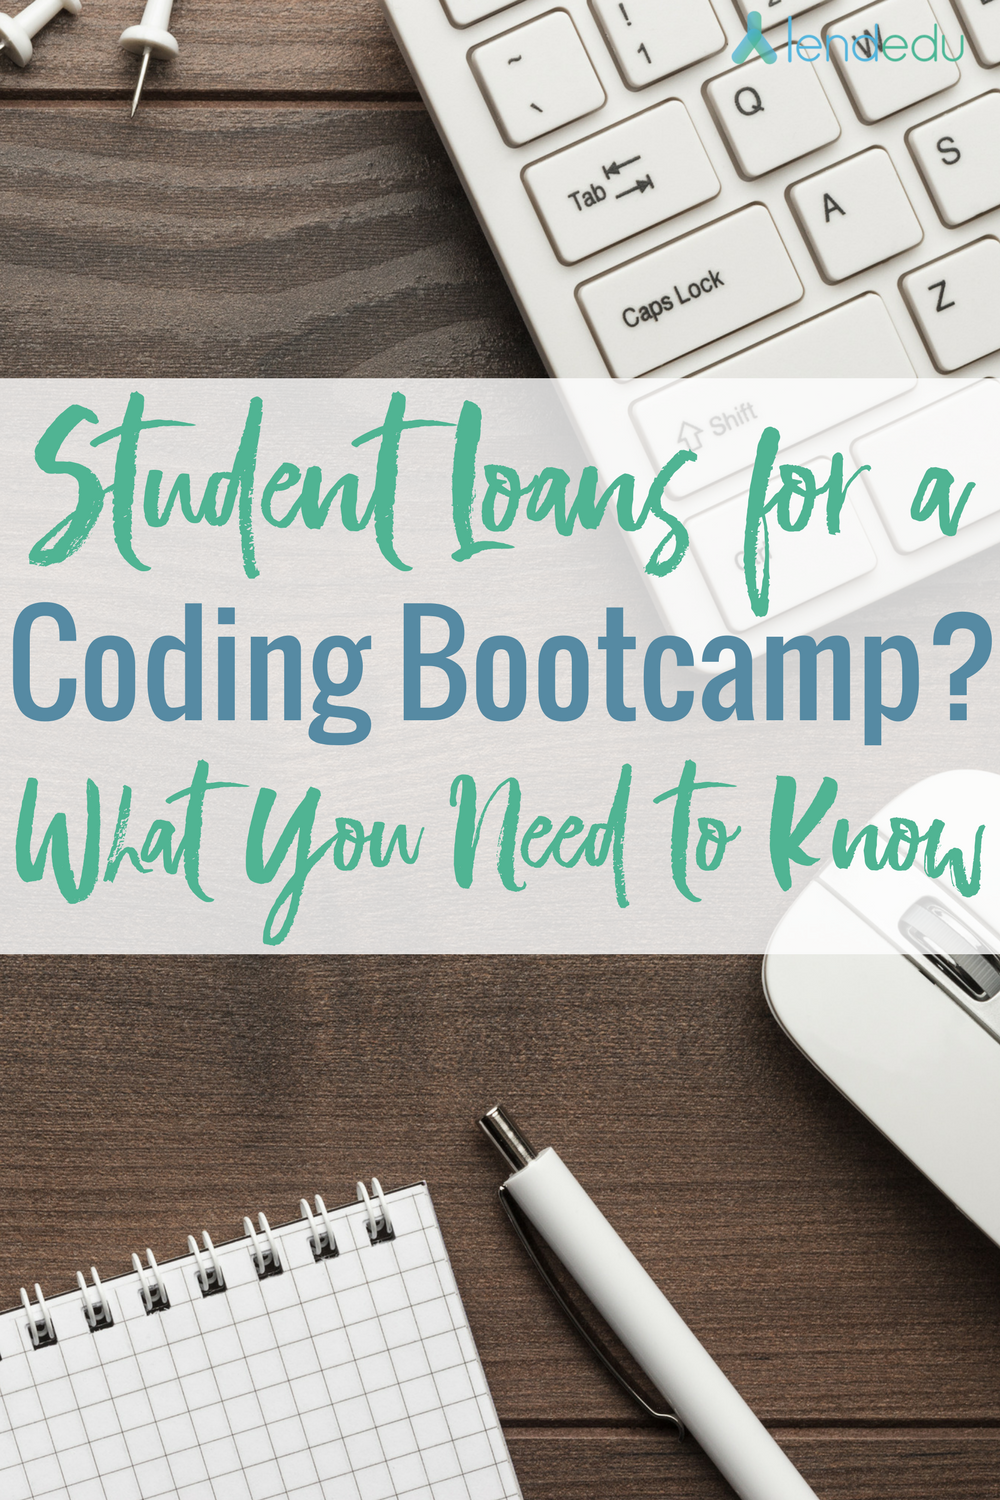 Student Loans for a Coding Bootcamp_ Here are the facts.